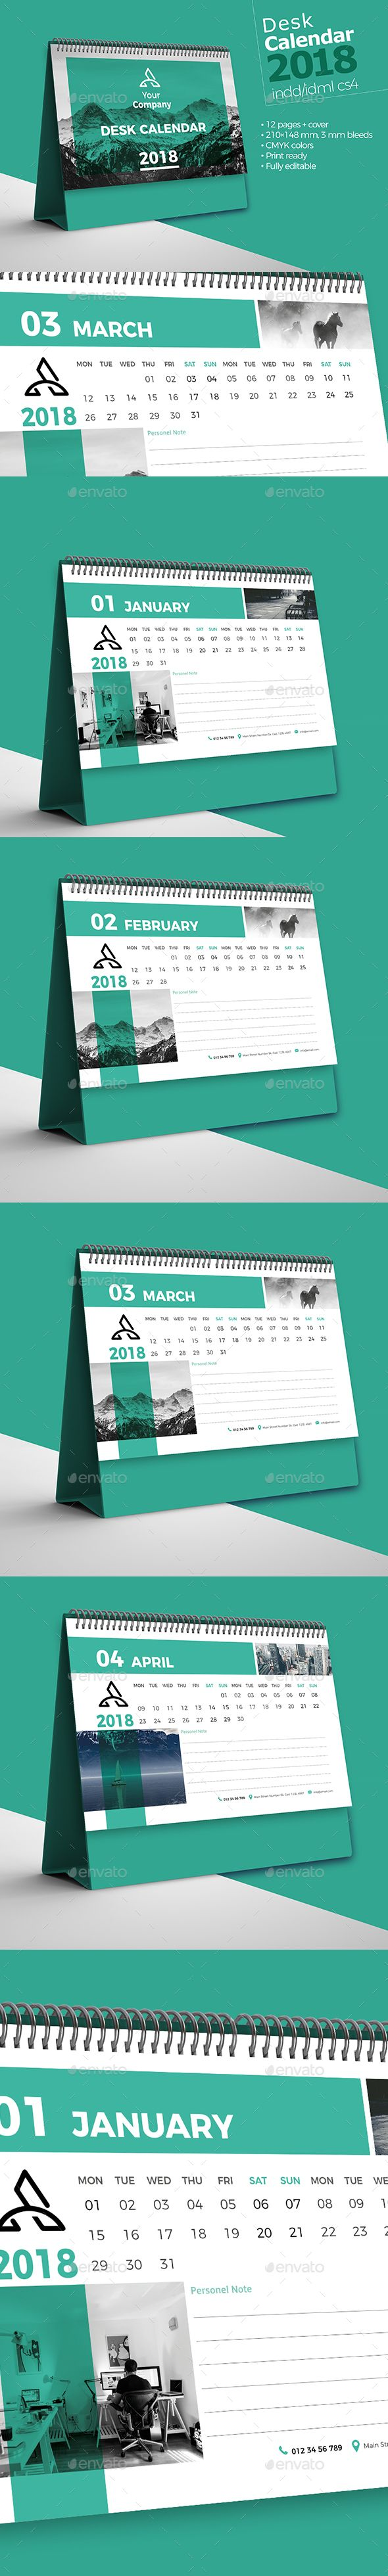 Desk Calendar 2018 Template InDesign INDD